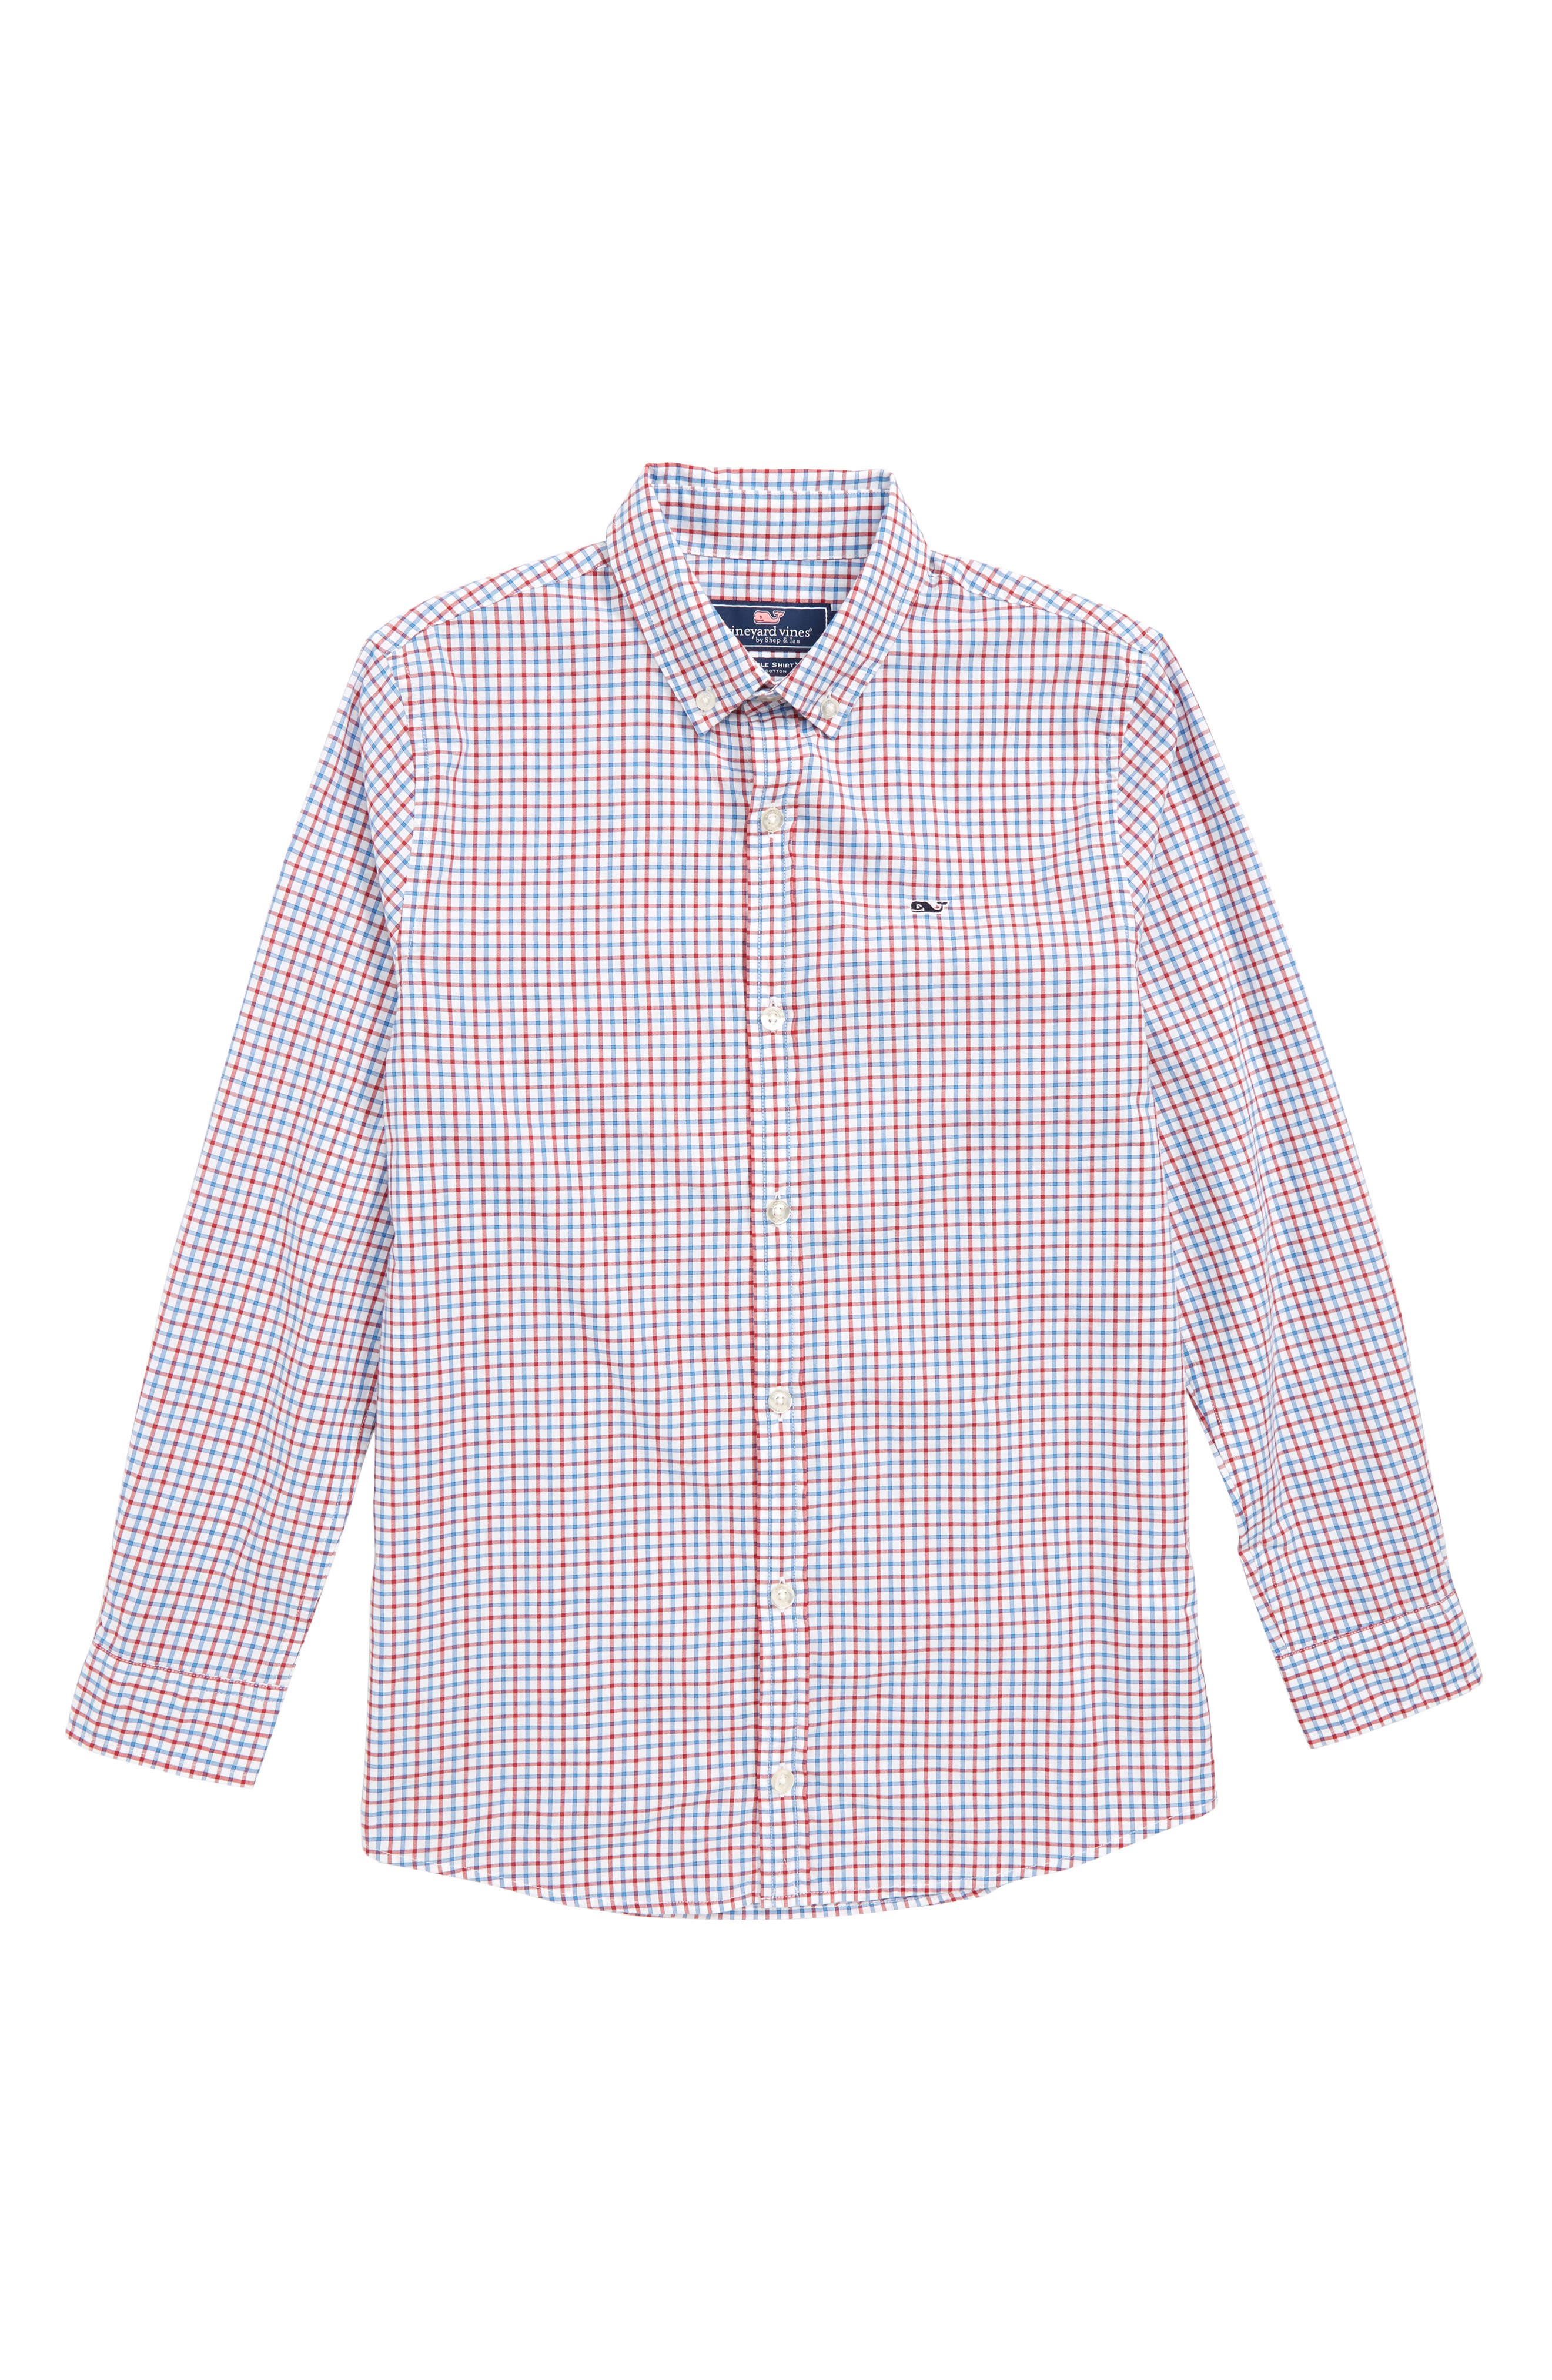 Clark Cove Check Whale Shirt,                         Main,                         color, Lighthouse Red